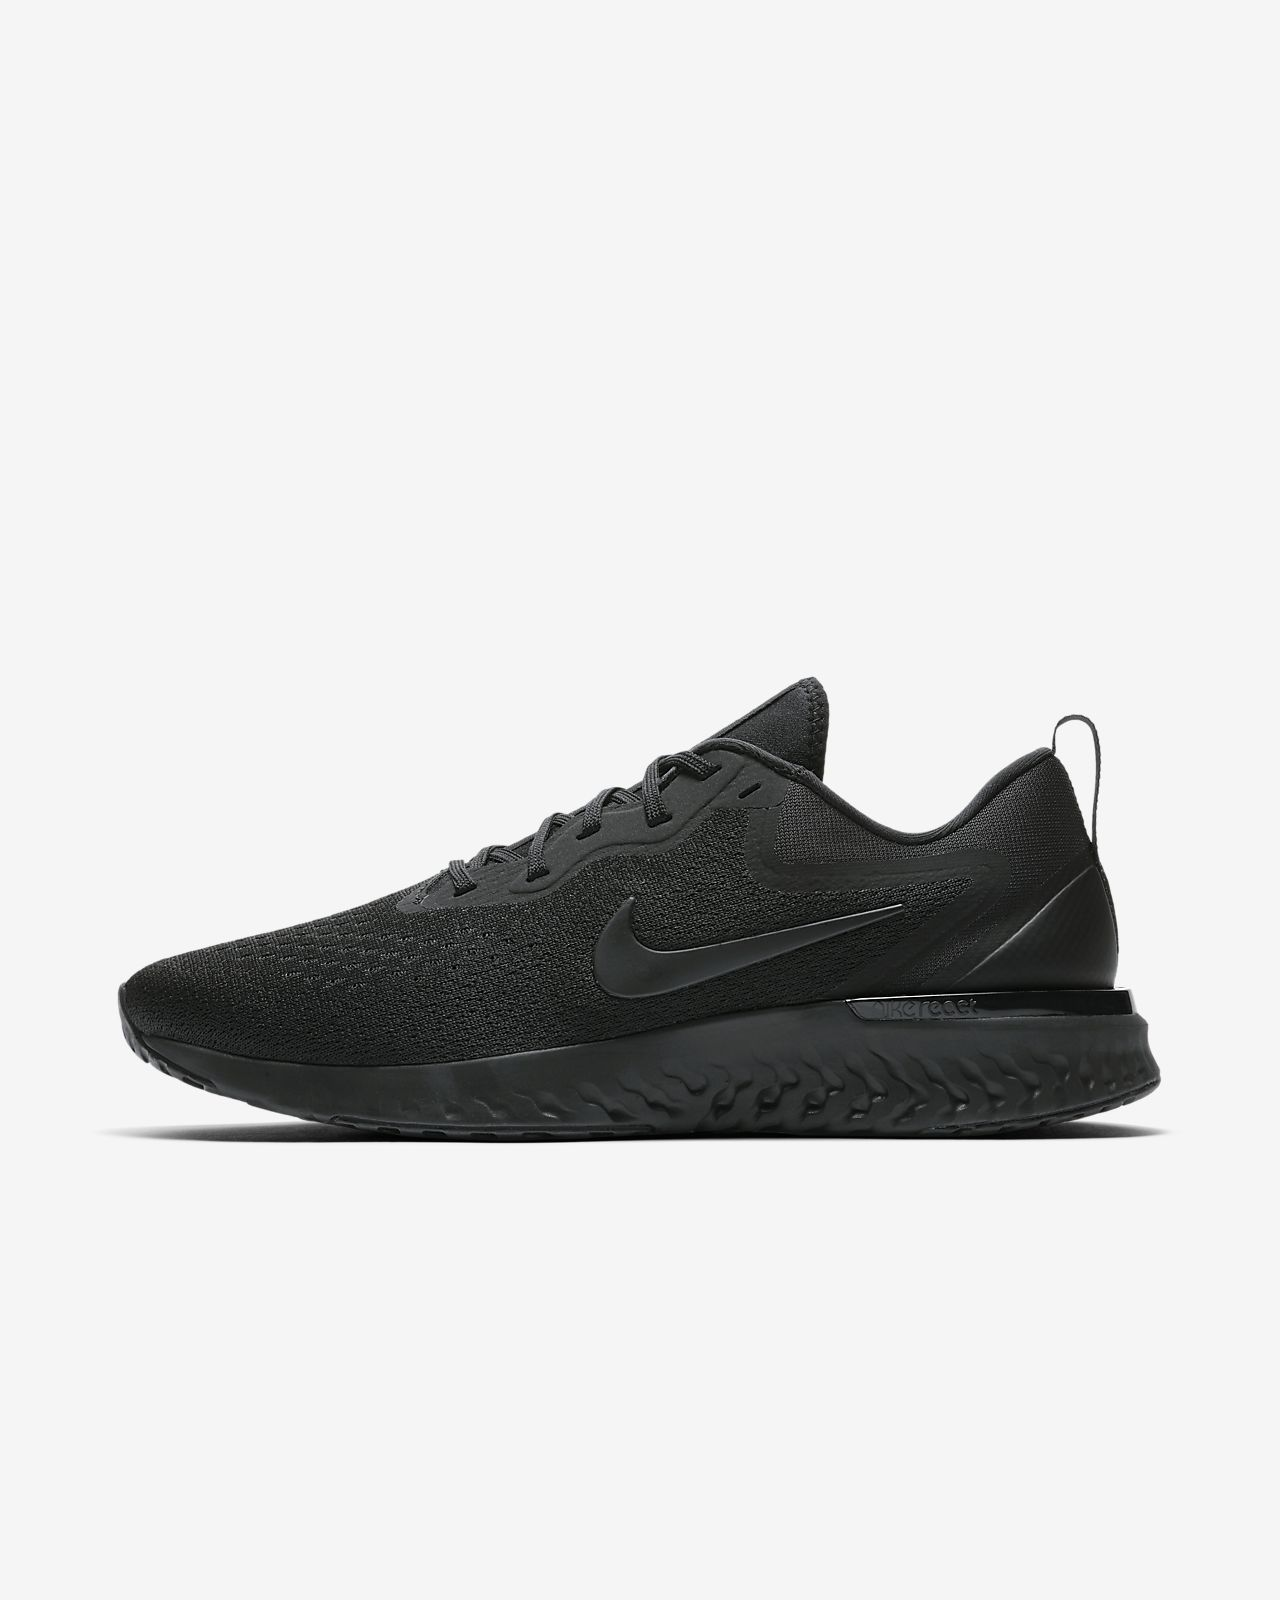 c9818de0f9b8 ... coupon code for chaussure de running nike odyssey react pour homme  cefa3 7c4a4